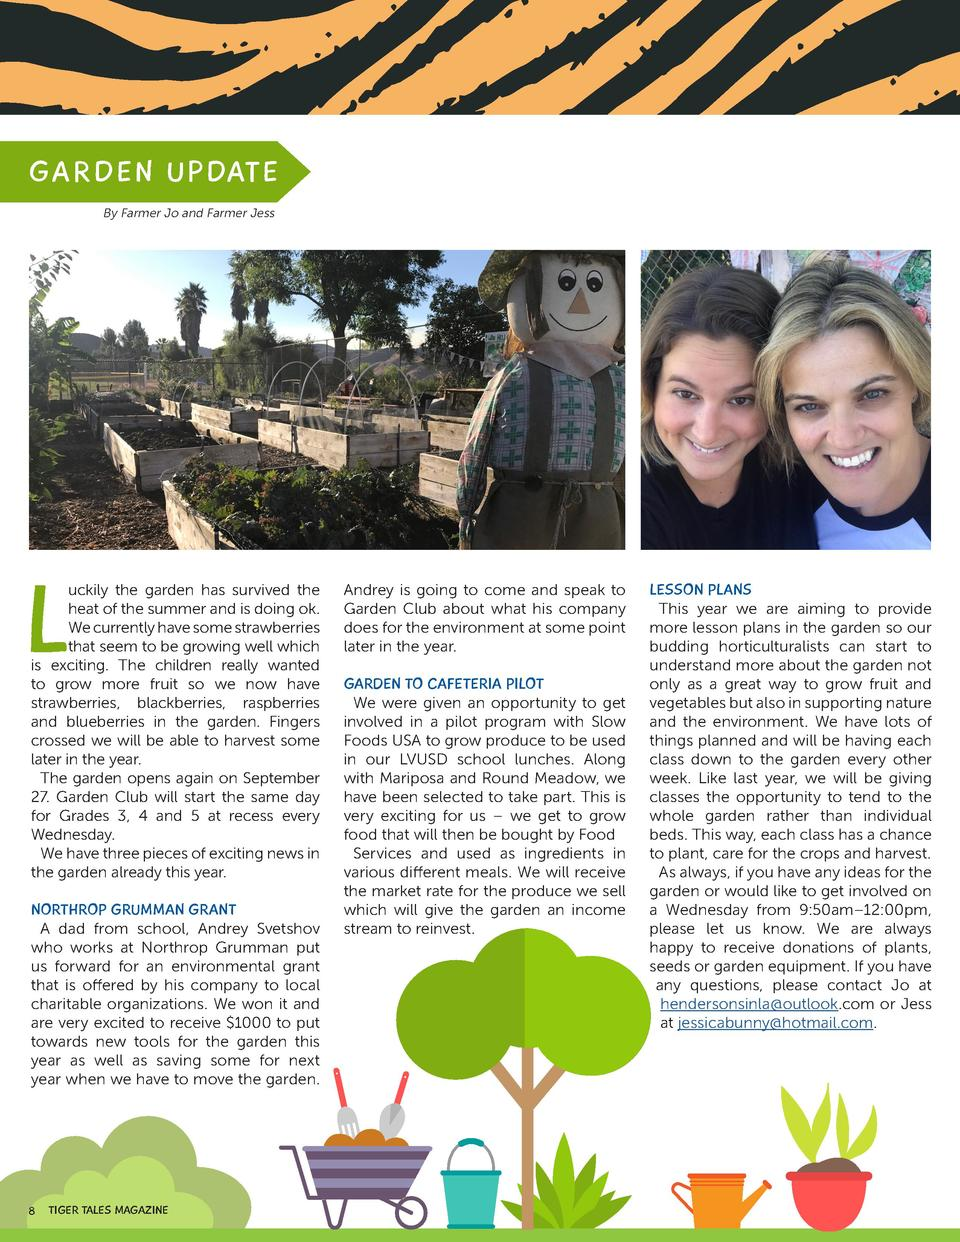 G AR D E N UPDAT E By Farmer Jo and Farmer Jess  FILES FORMAT AI   EPS   SVG  L  uckily the garden has survived the heat o...